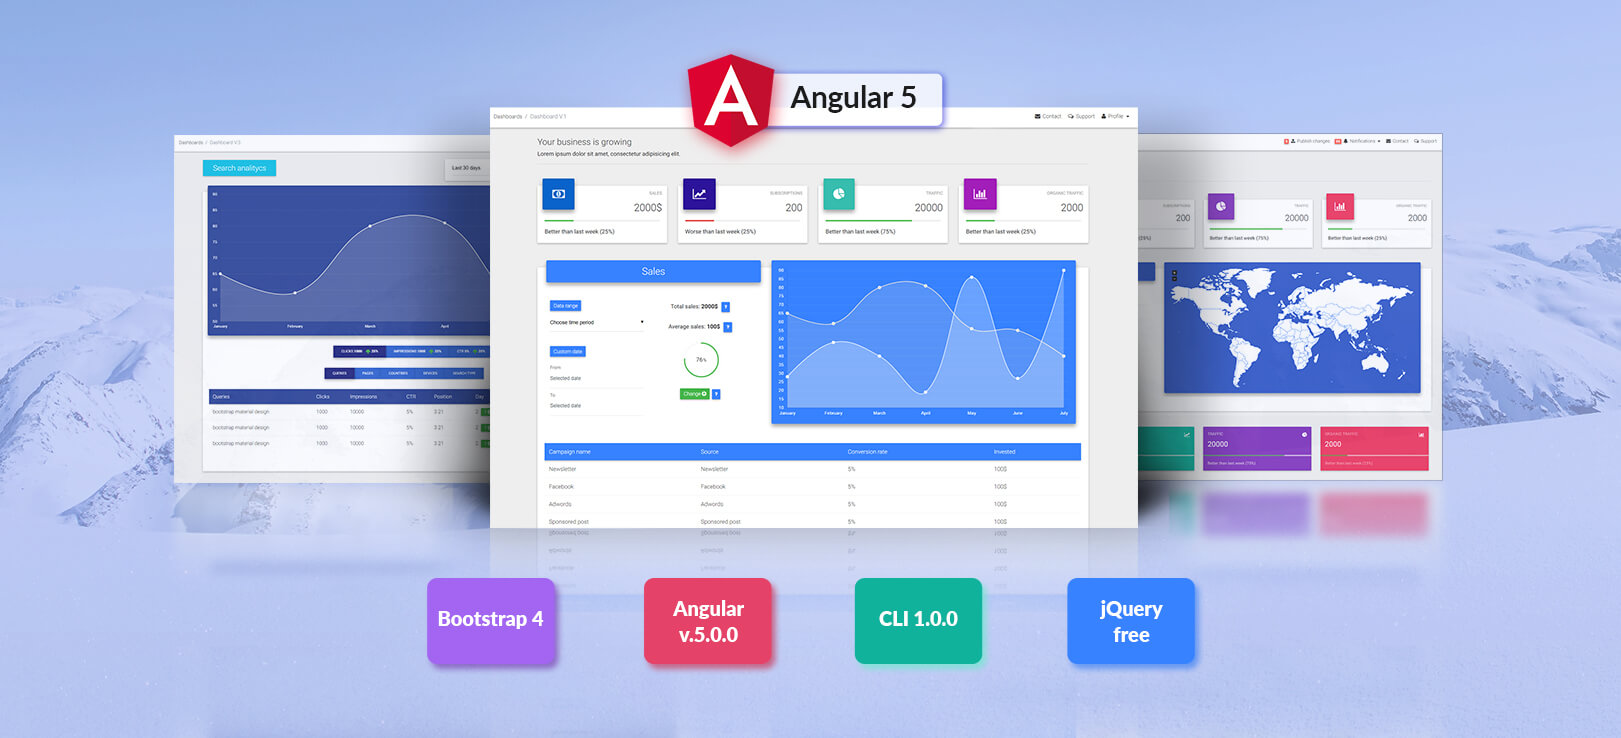 Angular 5 Bootstrap 4 and material design